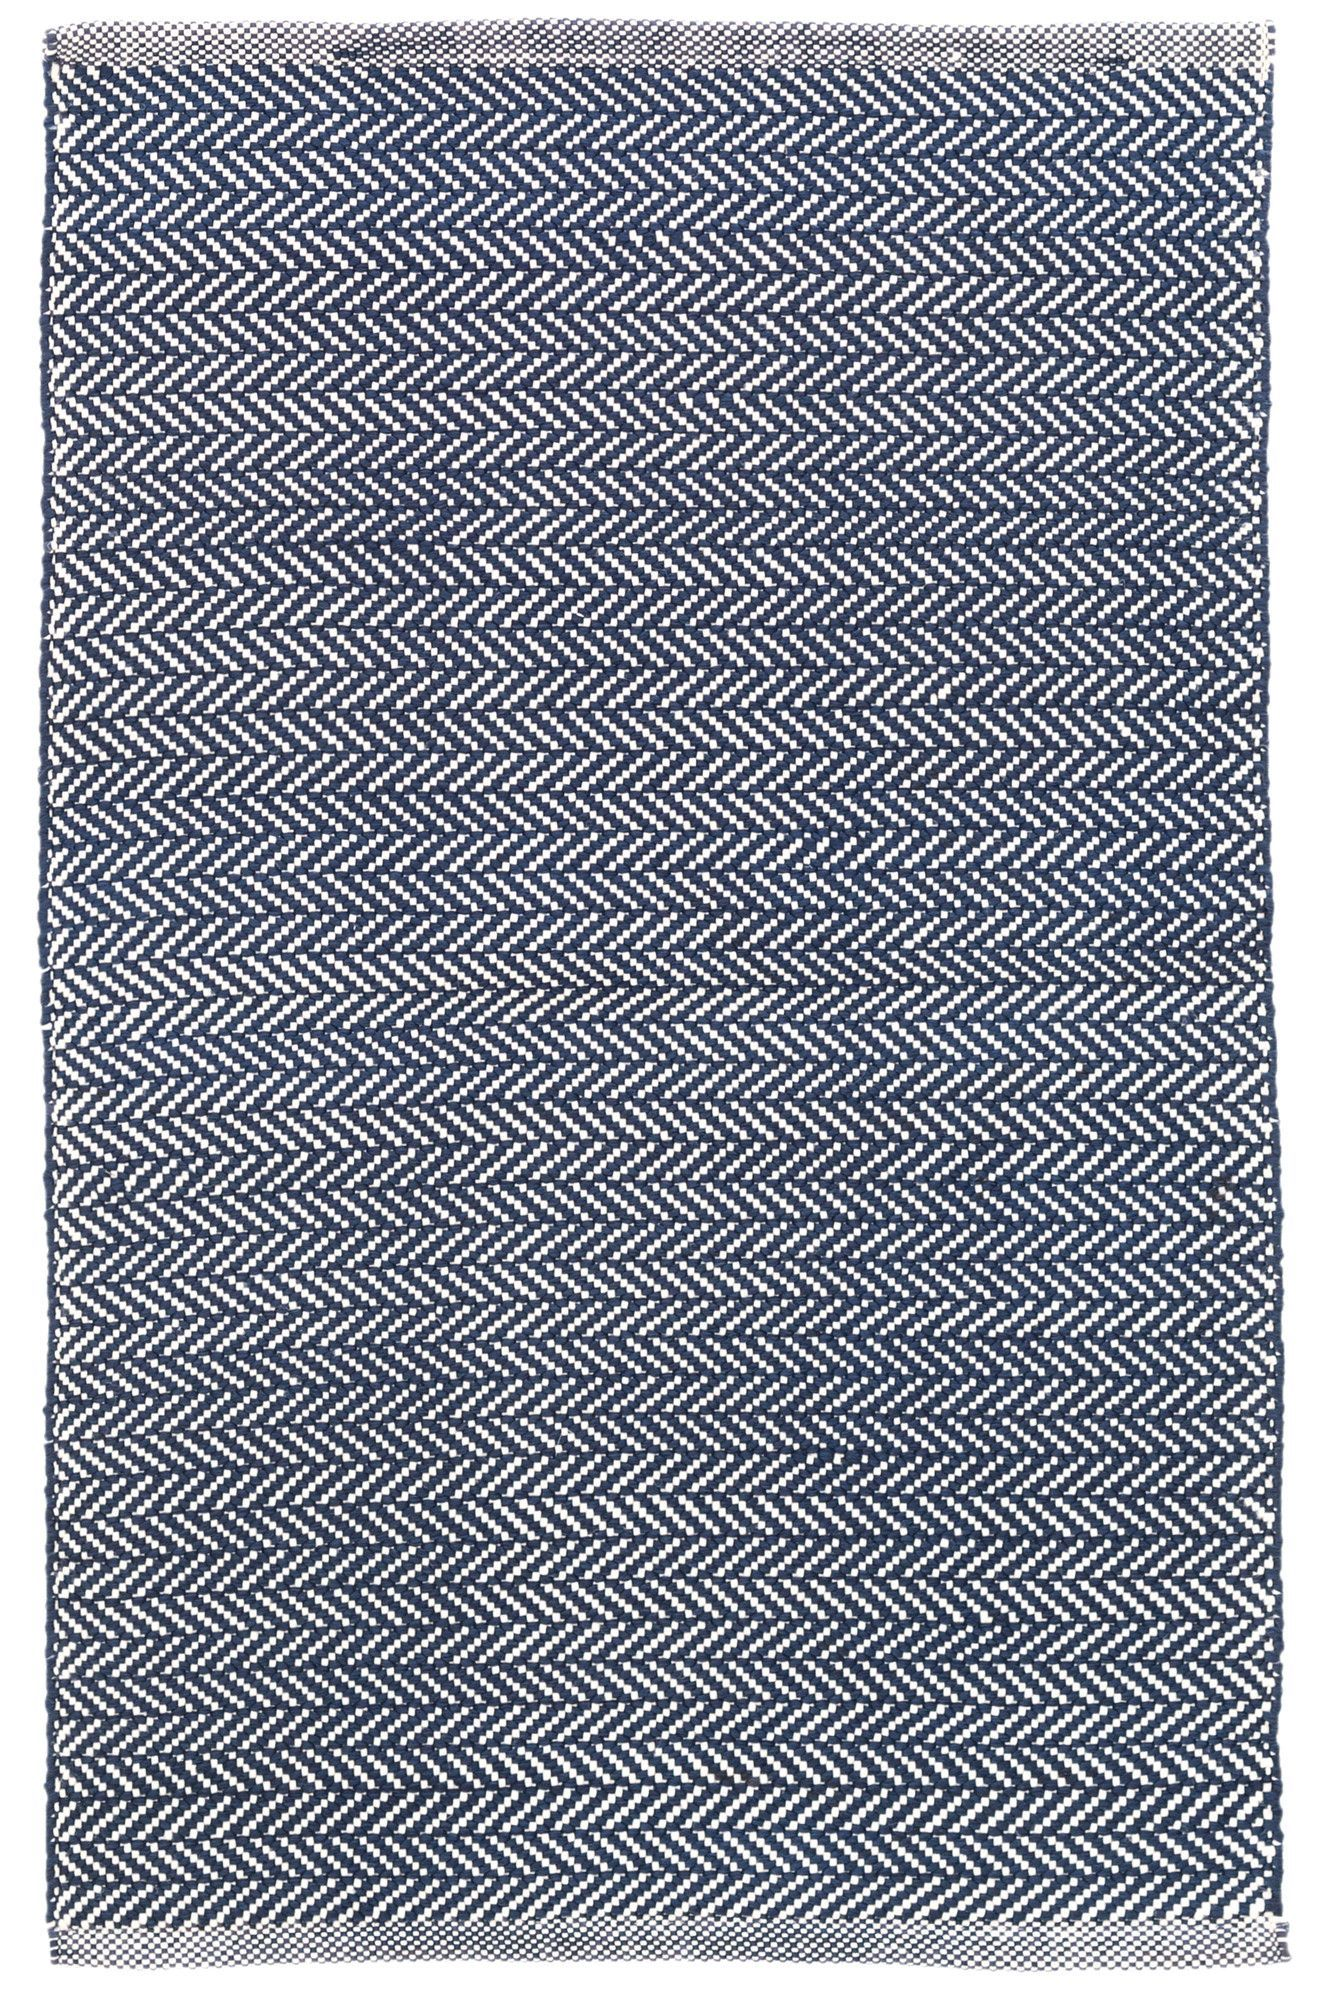 Dash And Albert Rugs C3 Herringbone Indigo Indoor Outdoor Area Rug Indoor Outdoor Rugs Dash And Albert Rugs Indoor Outdoor Area Rugs